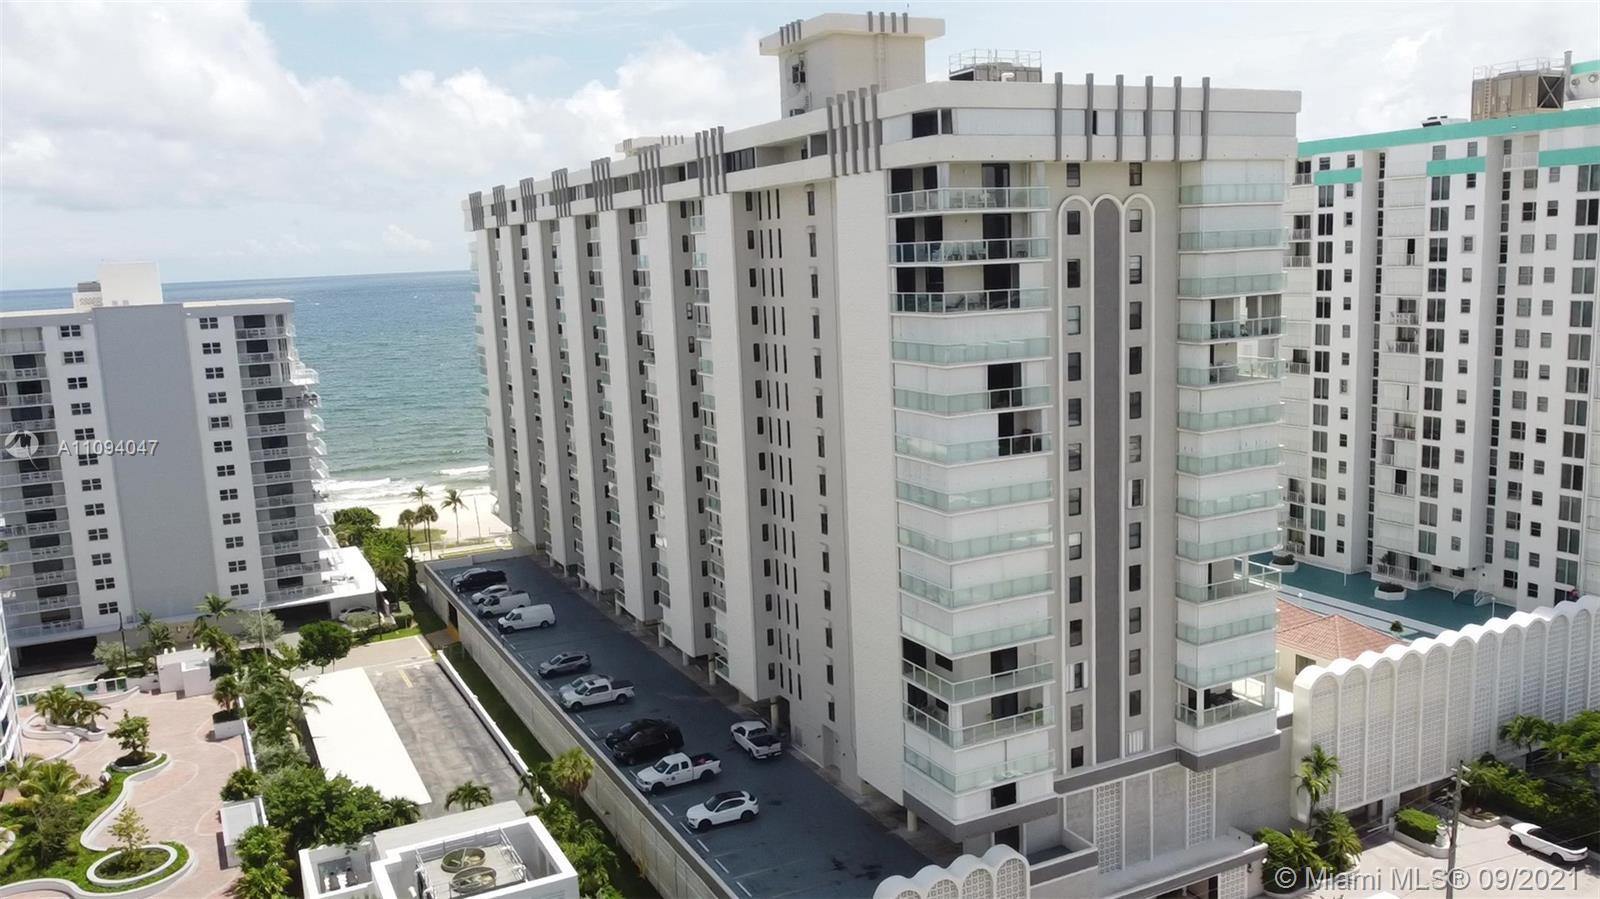 Water / Ocean Front Luxury Apartment 2BR, 2BA, Unit is tiled through out and bathrooms are updated.